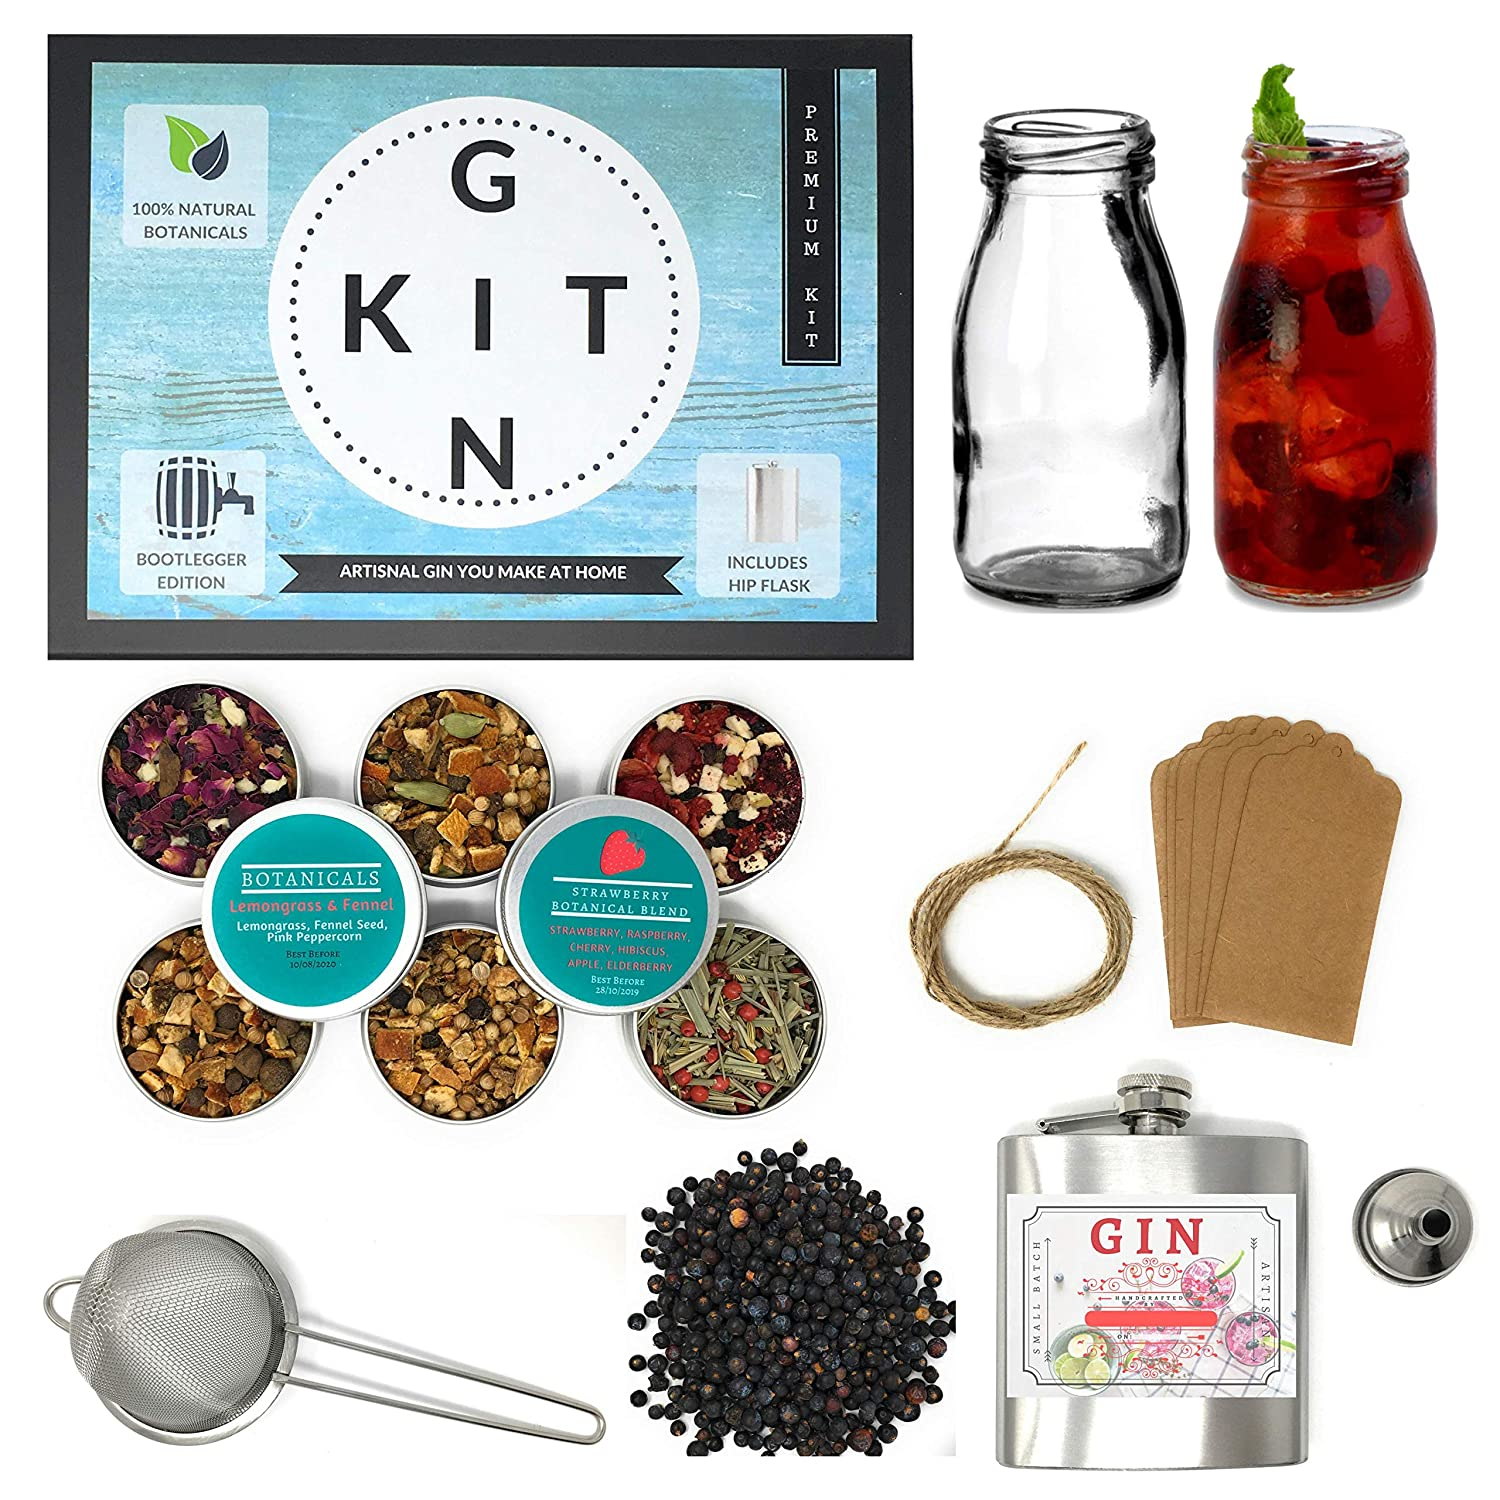 Real Homemade Gin Making Kit |The Ultimate Gin Making Kit Gift | Huge 28 Piece Botanical Gin Kit with Glass Bottles, Hipflask, Funnel, 6 Real Botanical Blends & More! The gin in a tin co.